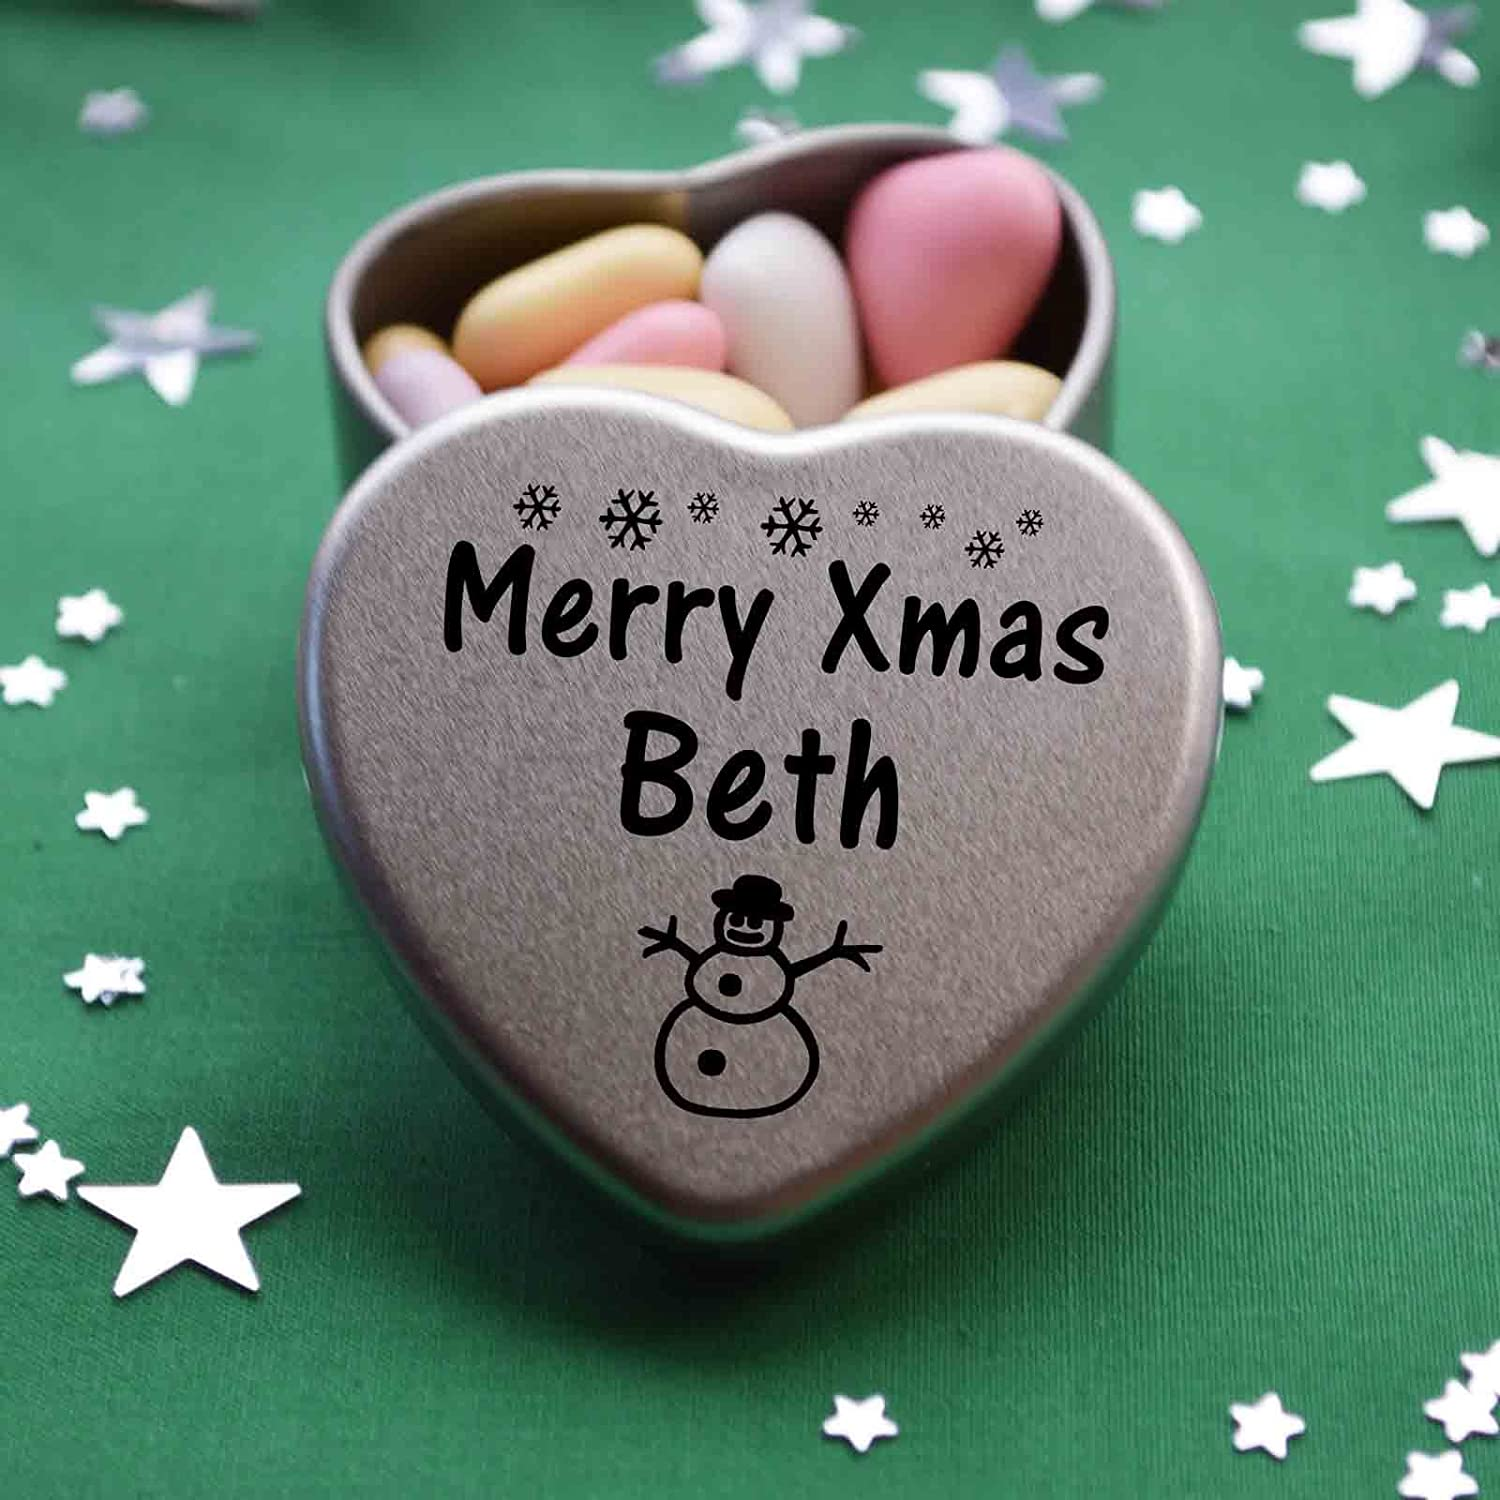 Merry Xmas Beth Mini Heart Gift Tin with Chocolates Fits Beautifully in the palm of your hand. Great Christmas Present for Beth Makes the perfect Stocking Filler or Card alternative. Tin Dimensions 45mmx45mmx20mm. Three designs Available, Father Christmas